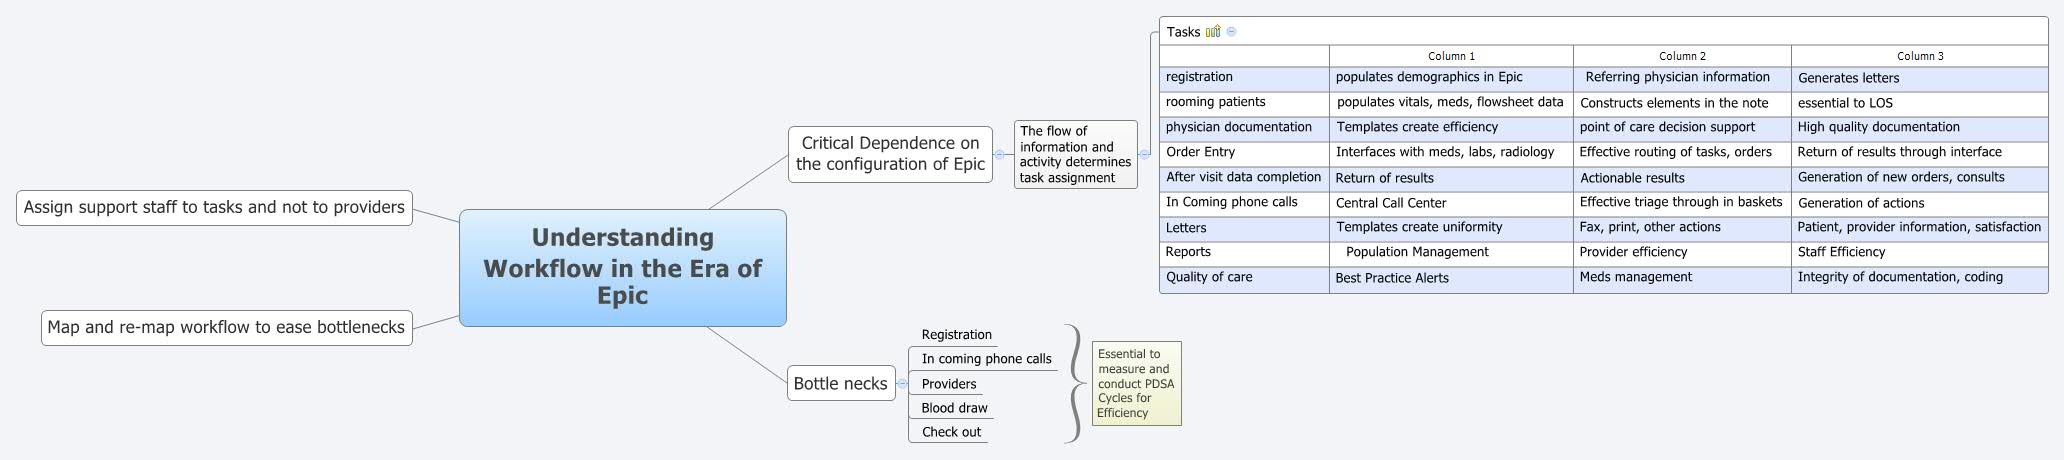 Understanding Workflow in the Era of Epic - XMind - Mind Mapping